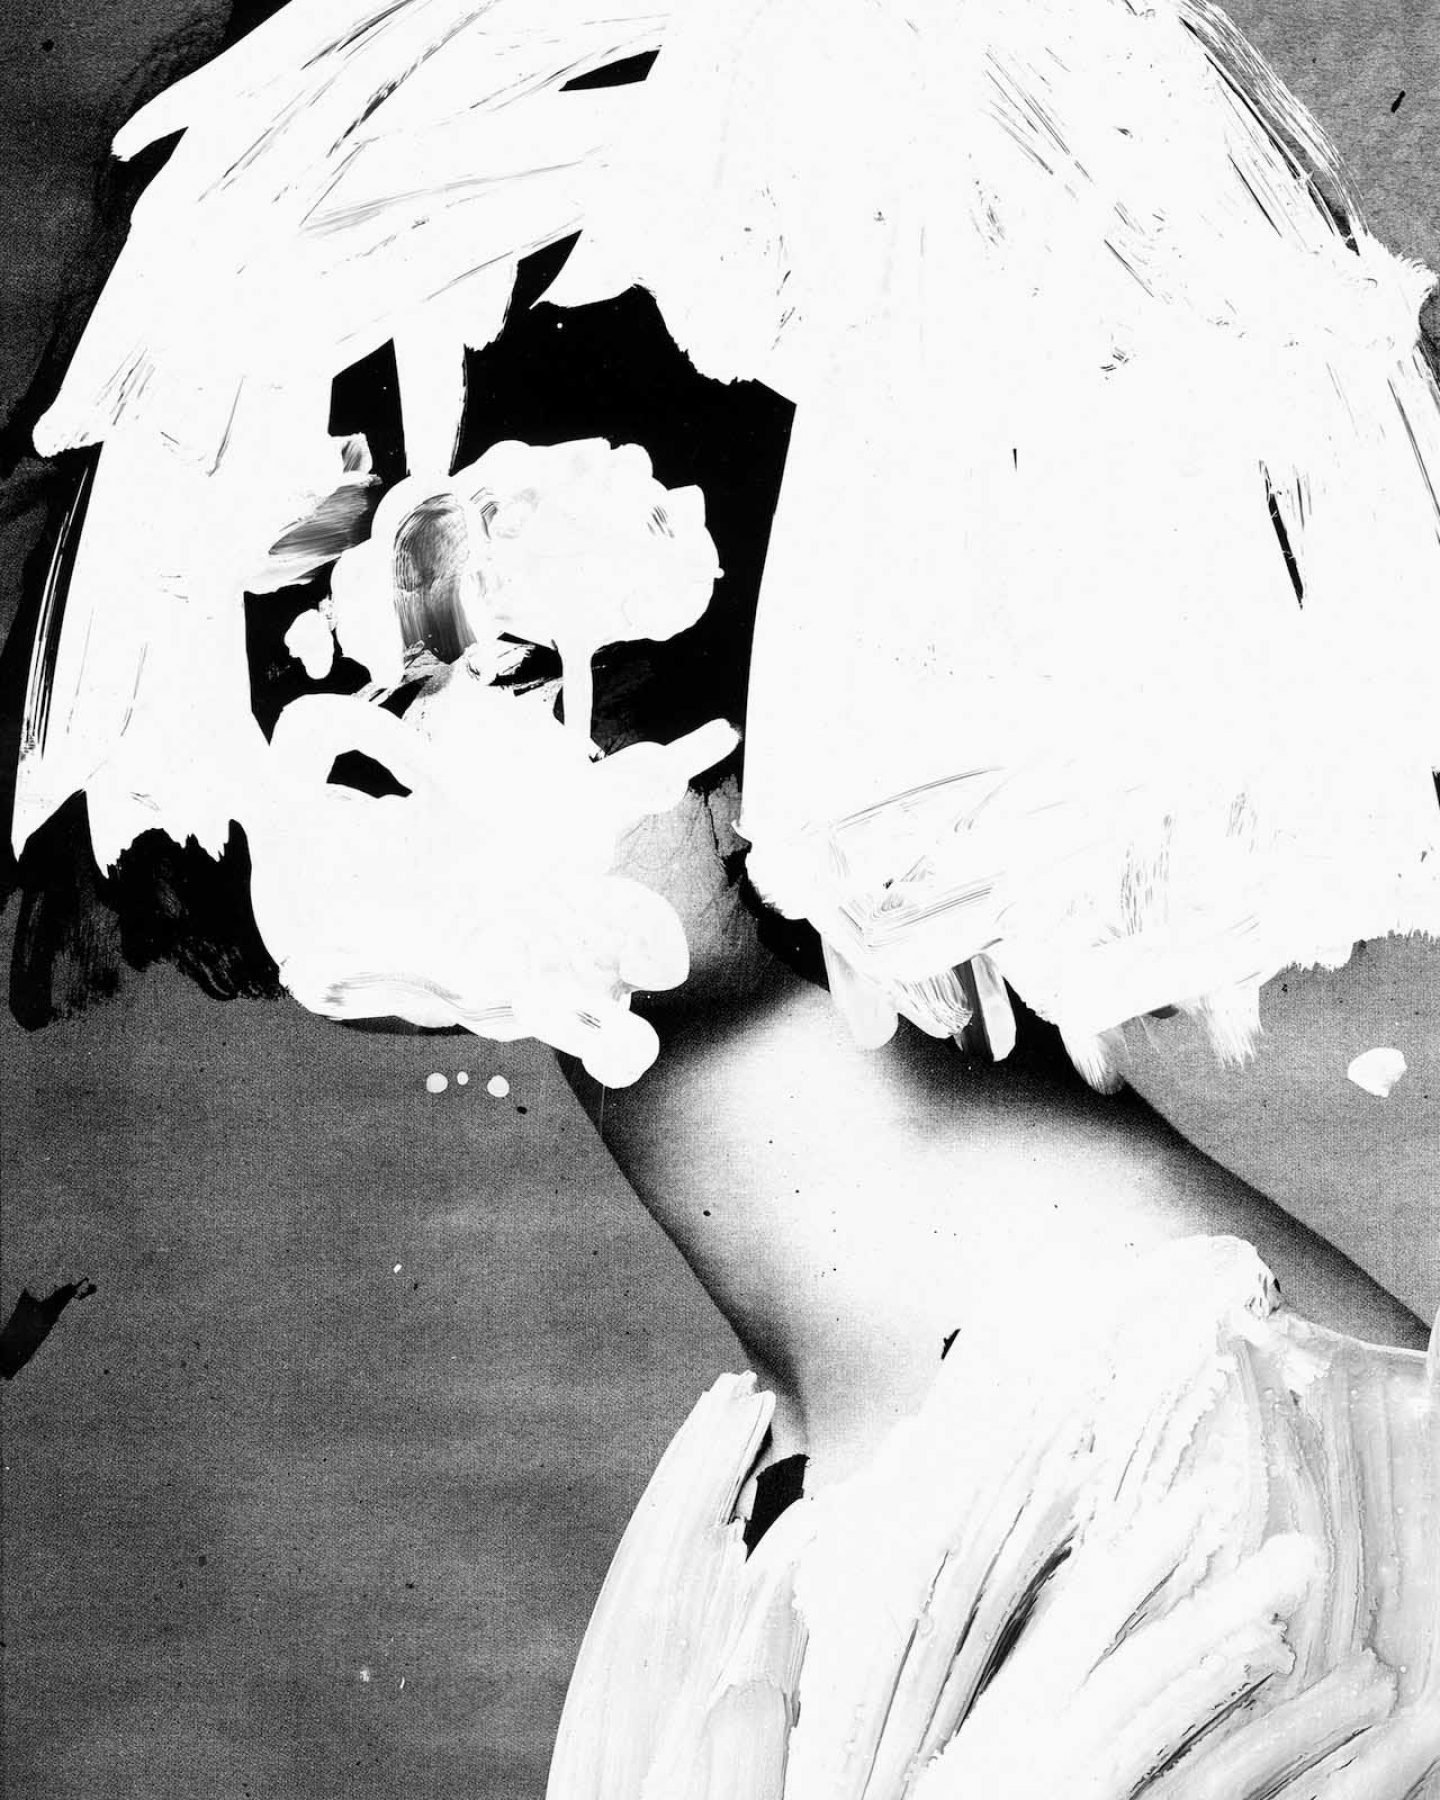 Art_Jesse_Draxler_Eerie_Collages_02